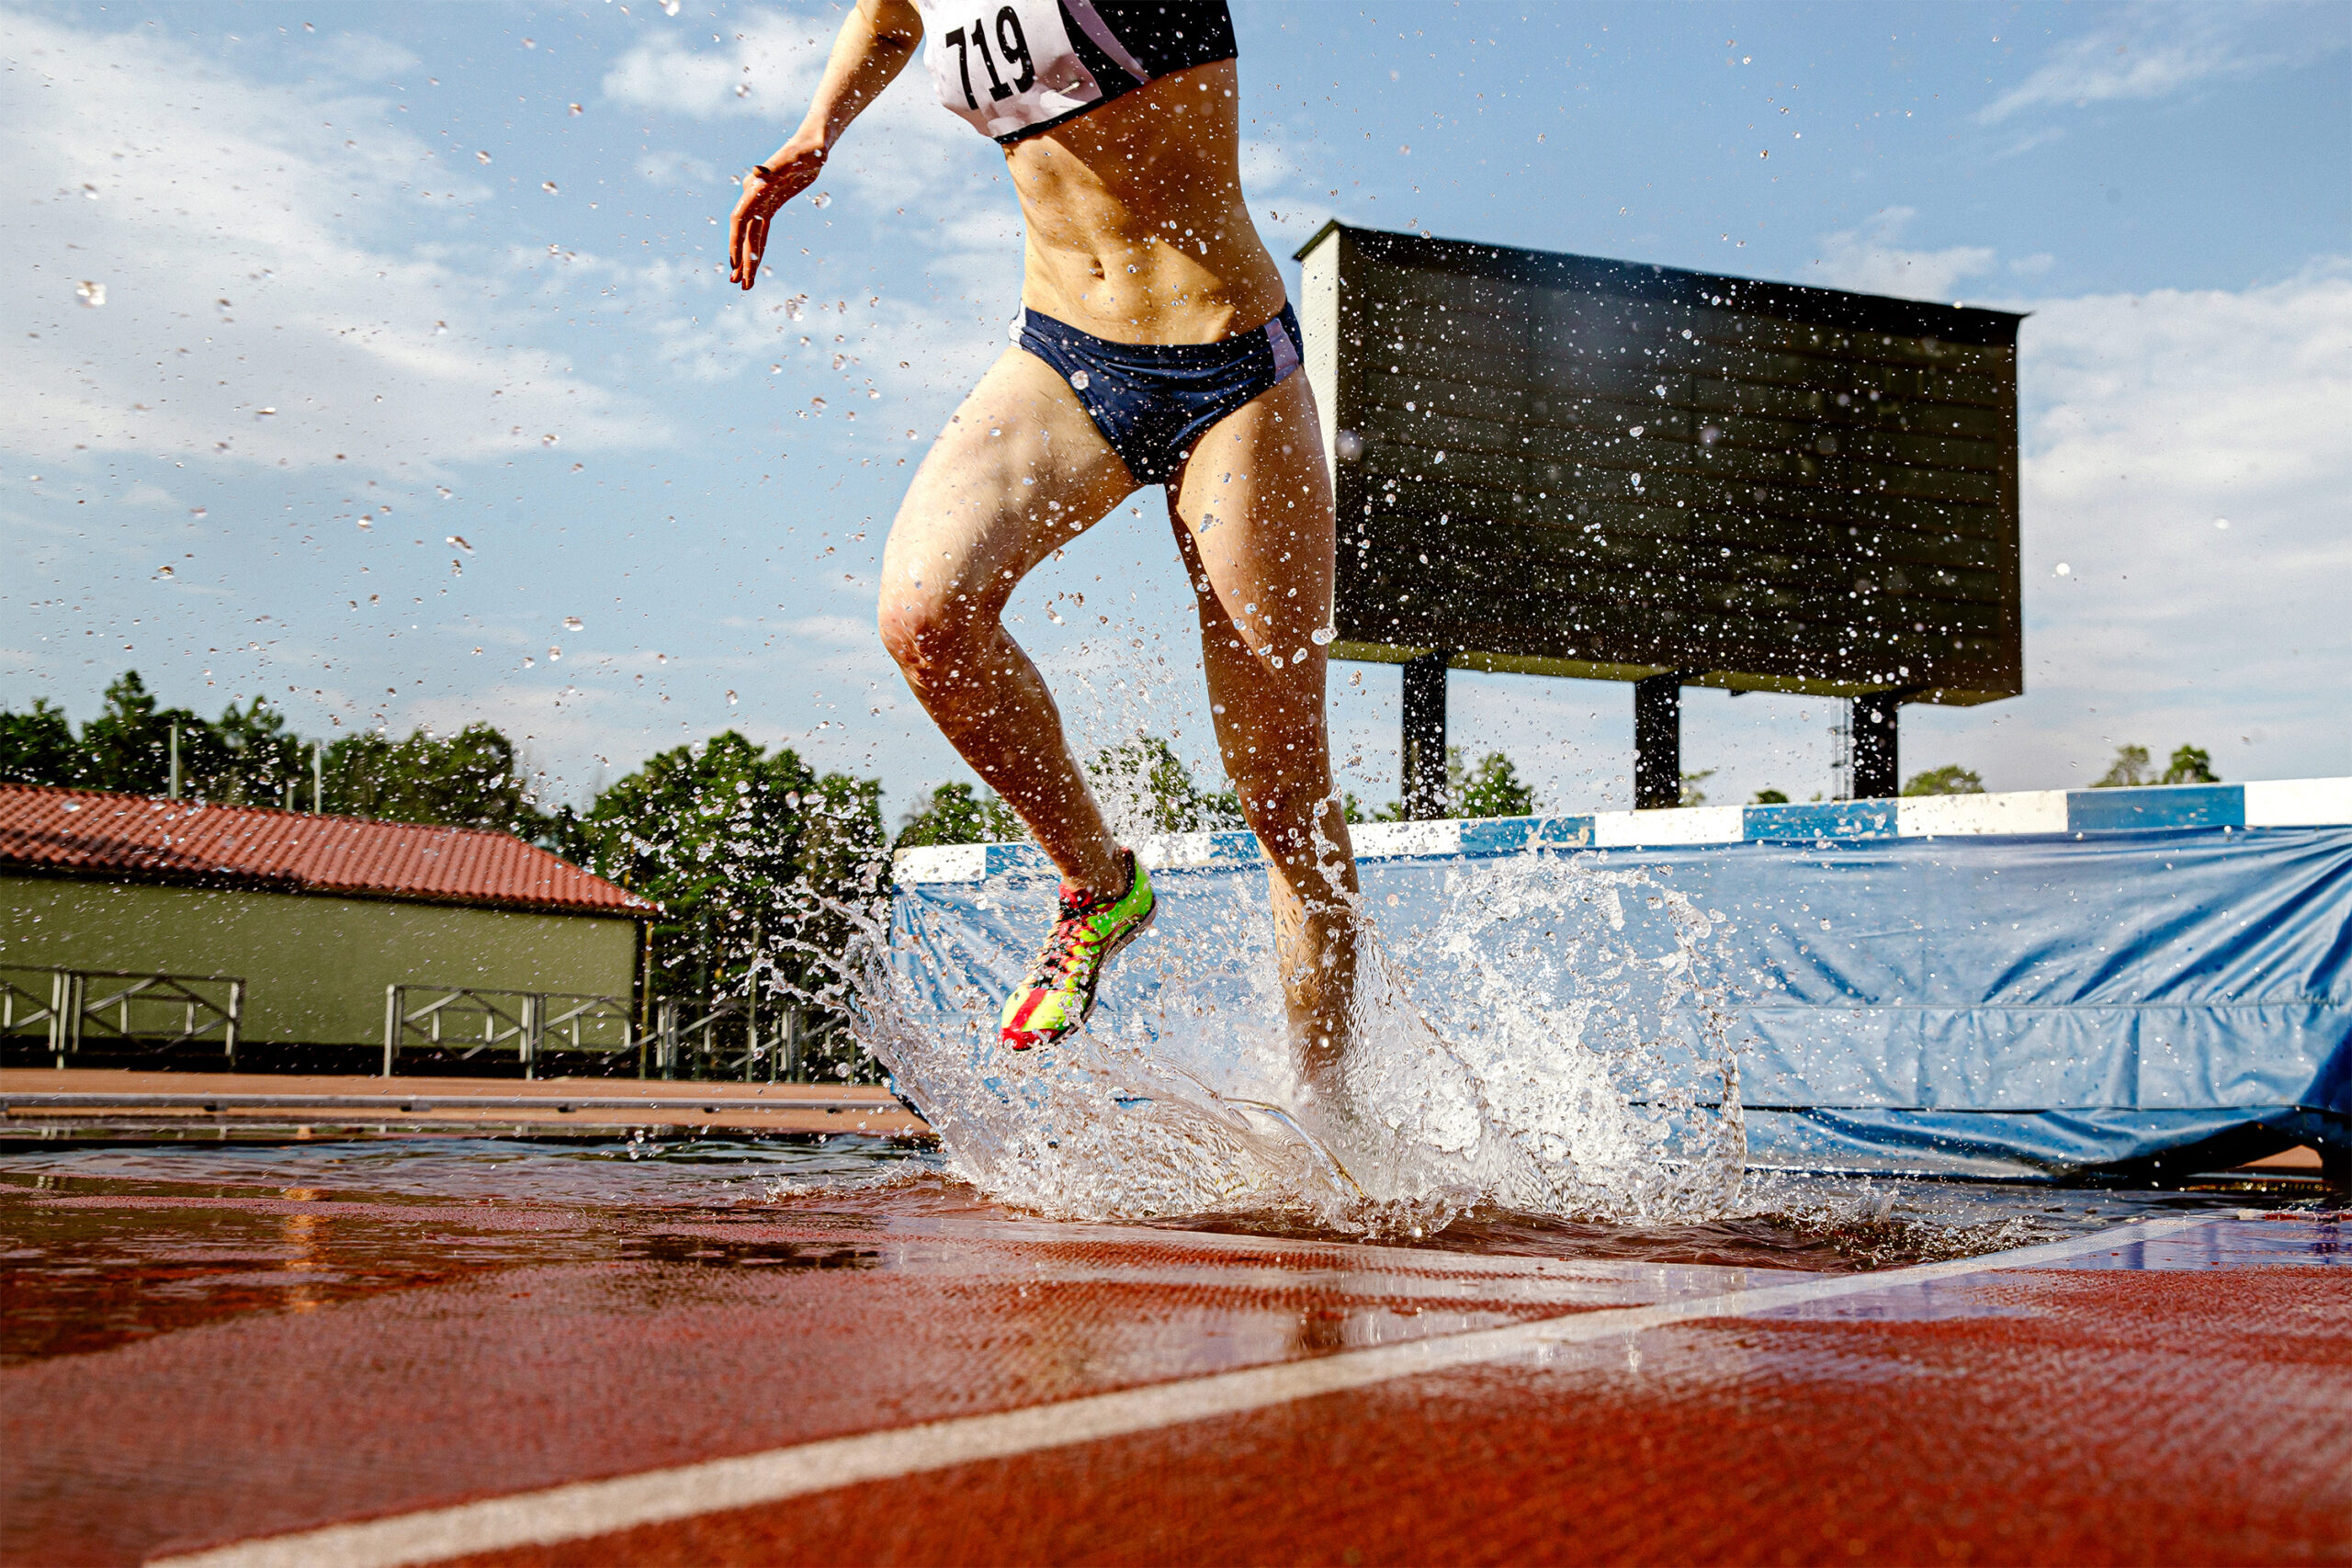 women athlete steeplechaser run pit with water in steeplechase race